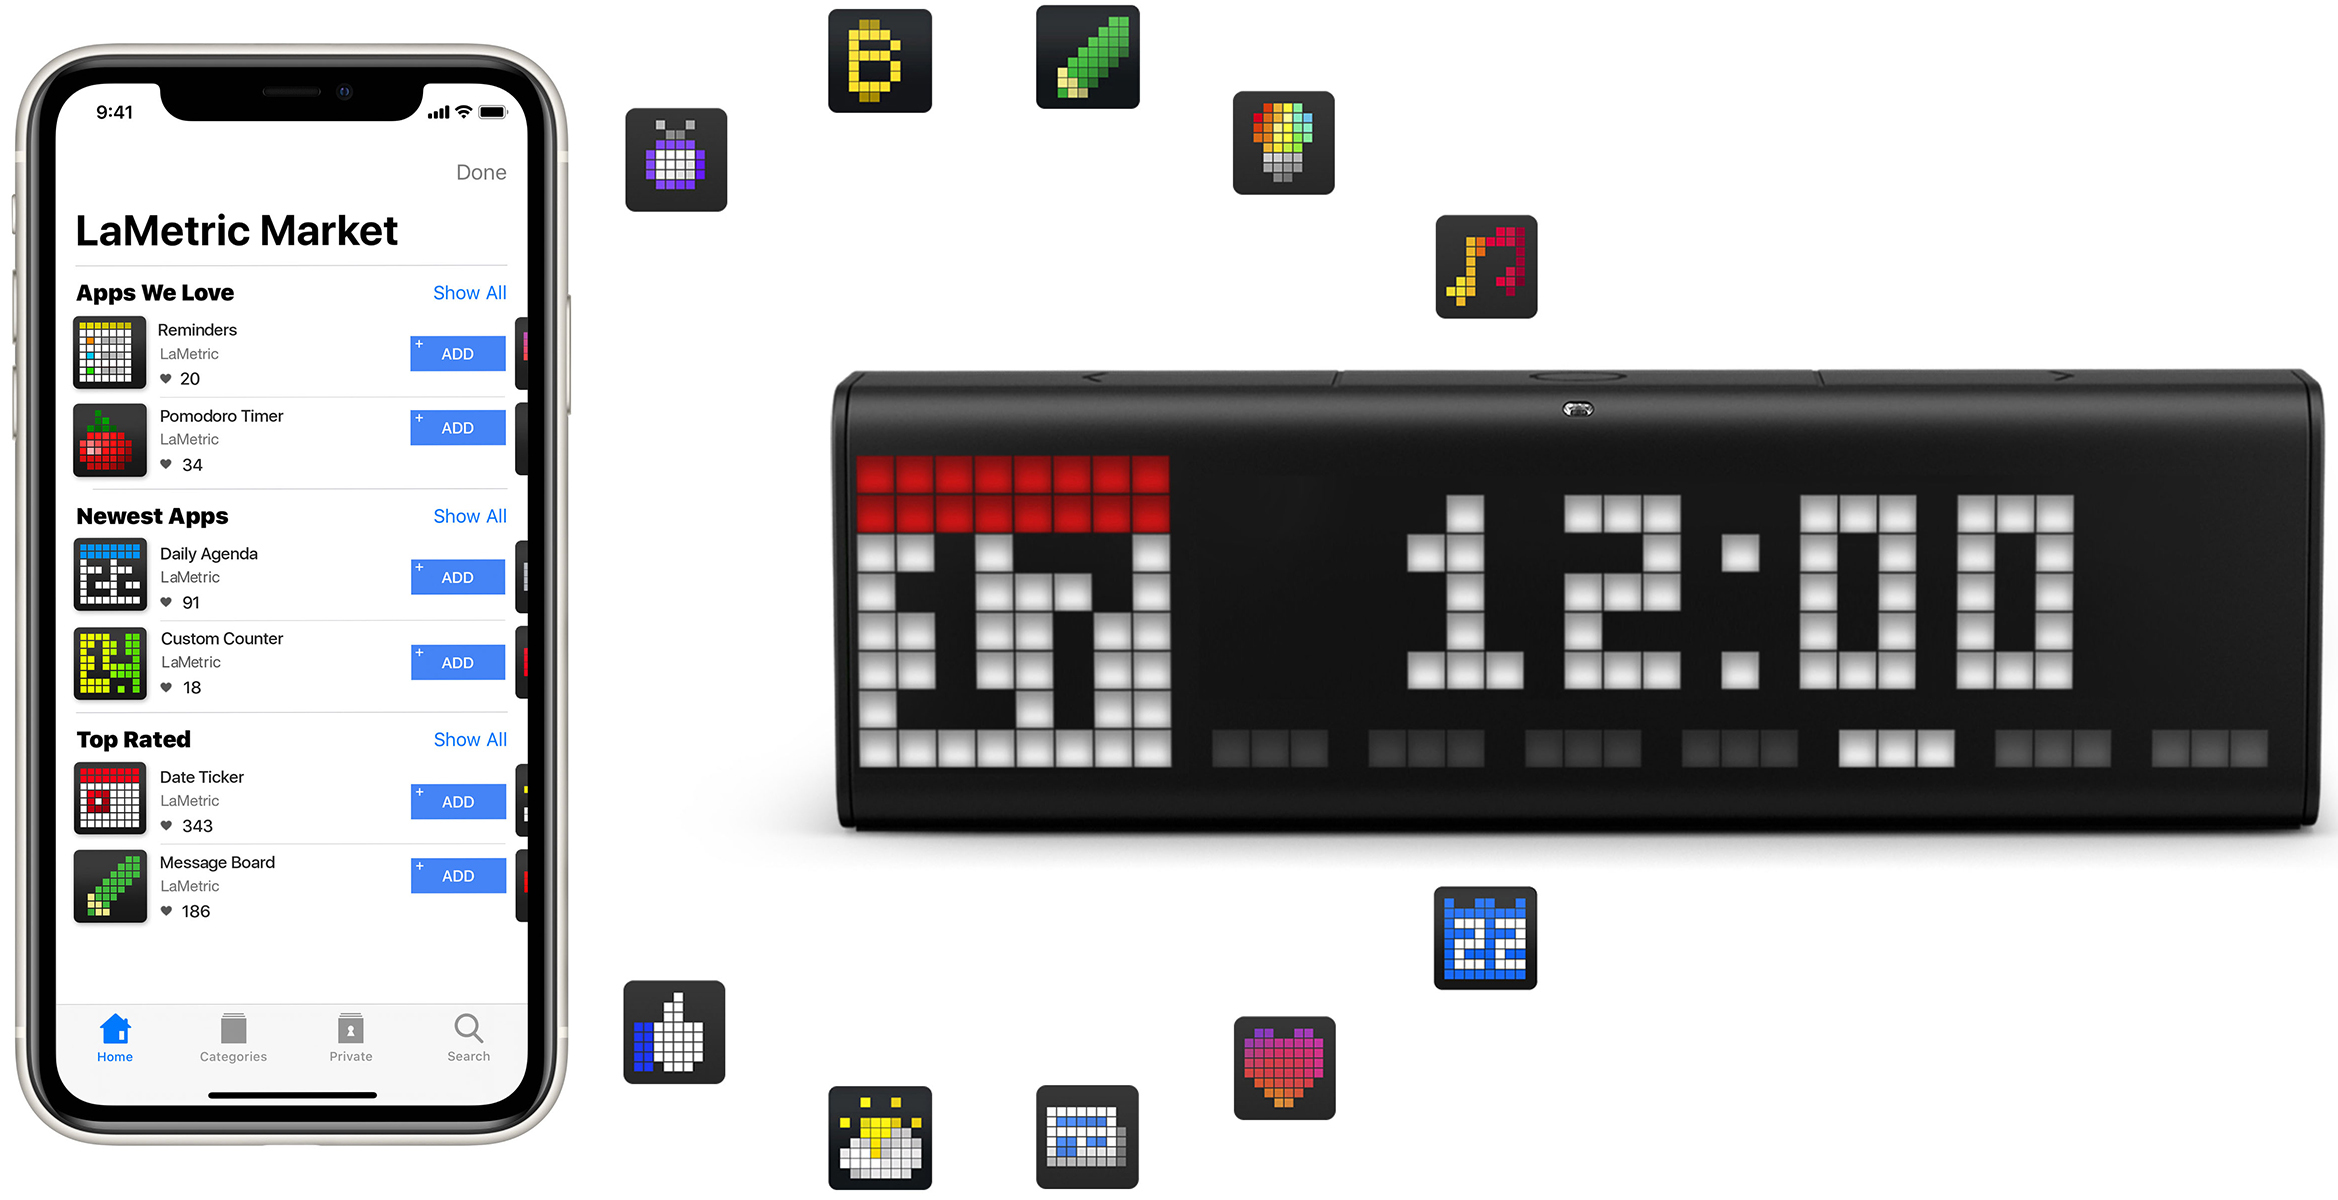 LaMetric Market with apps